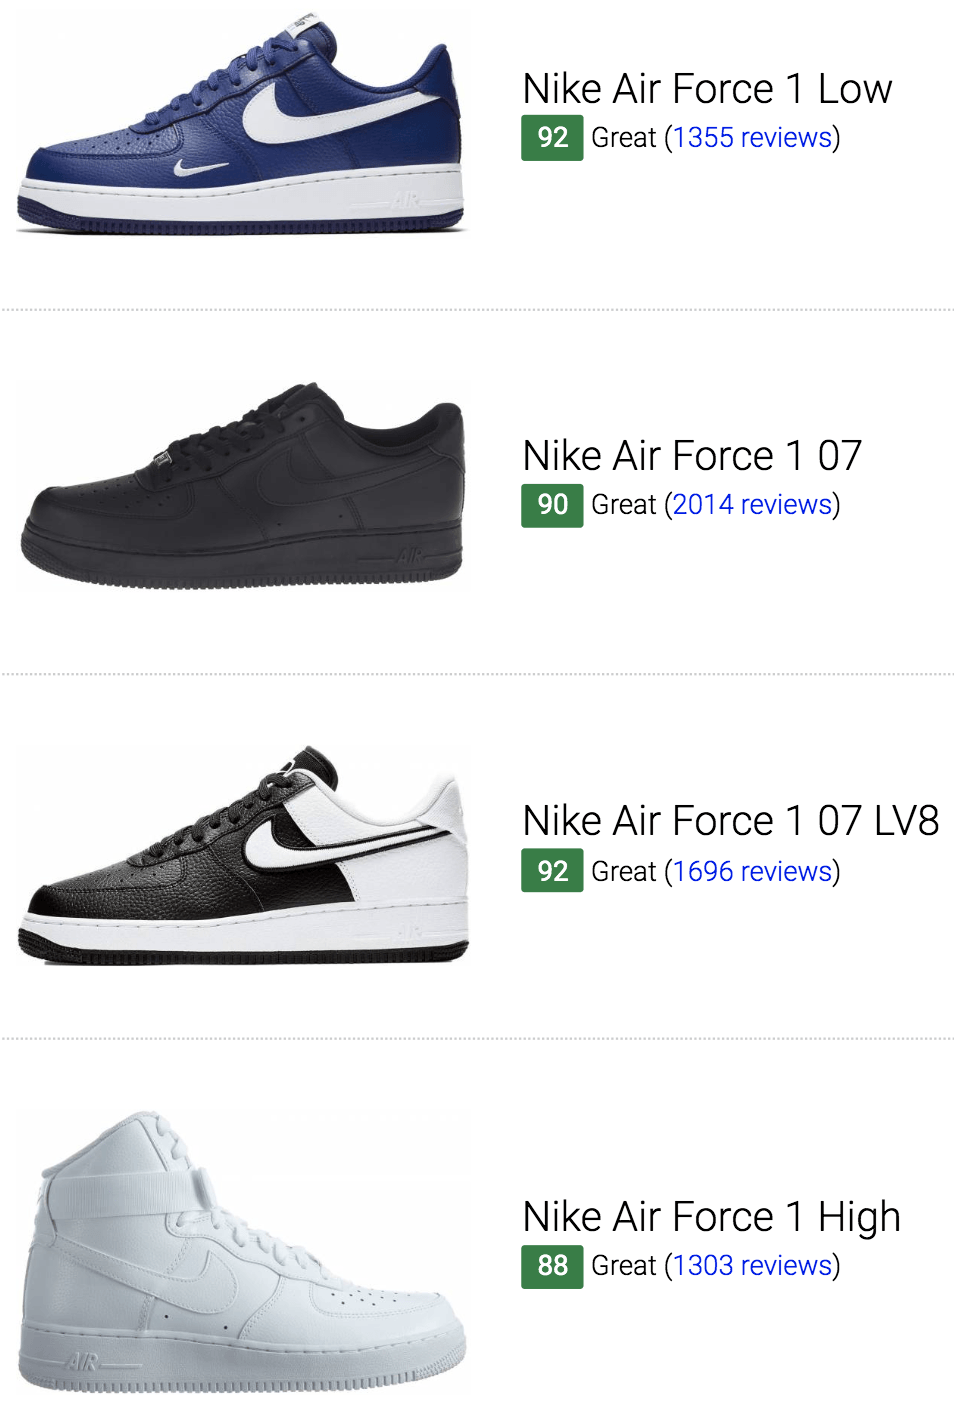 Best Nike Air Force 1 Sneakers